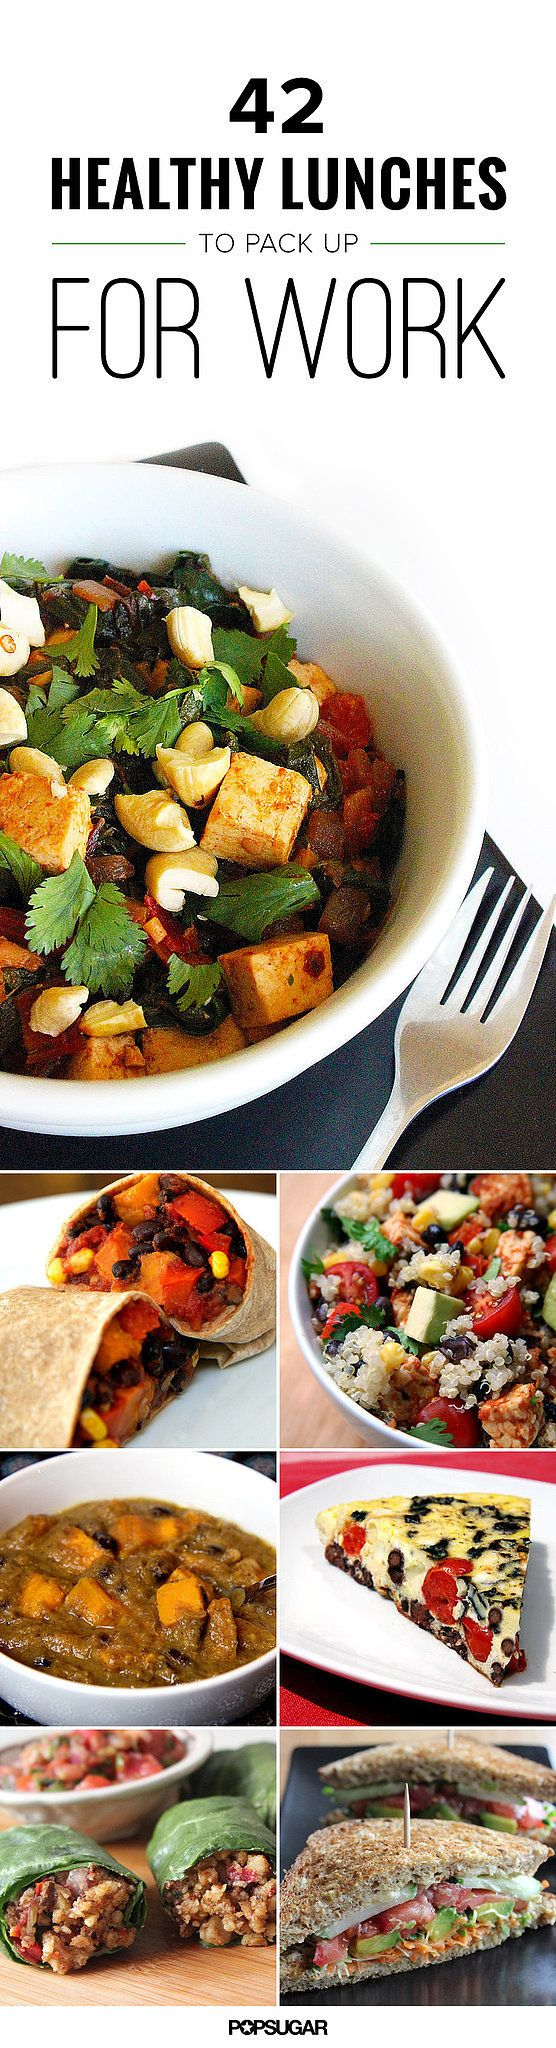 42 Healthy Lunches to Pack Up For Work